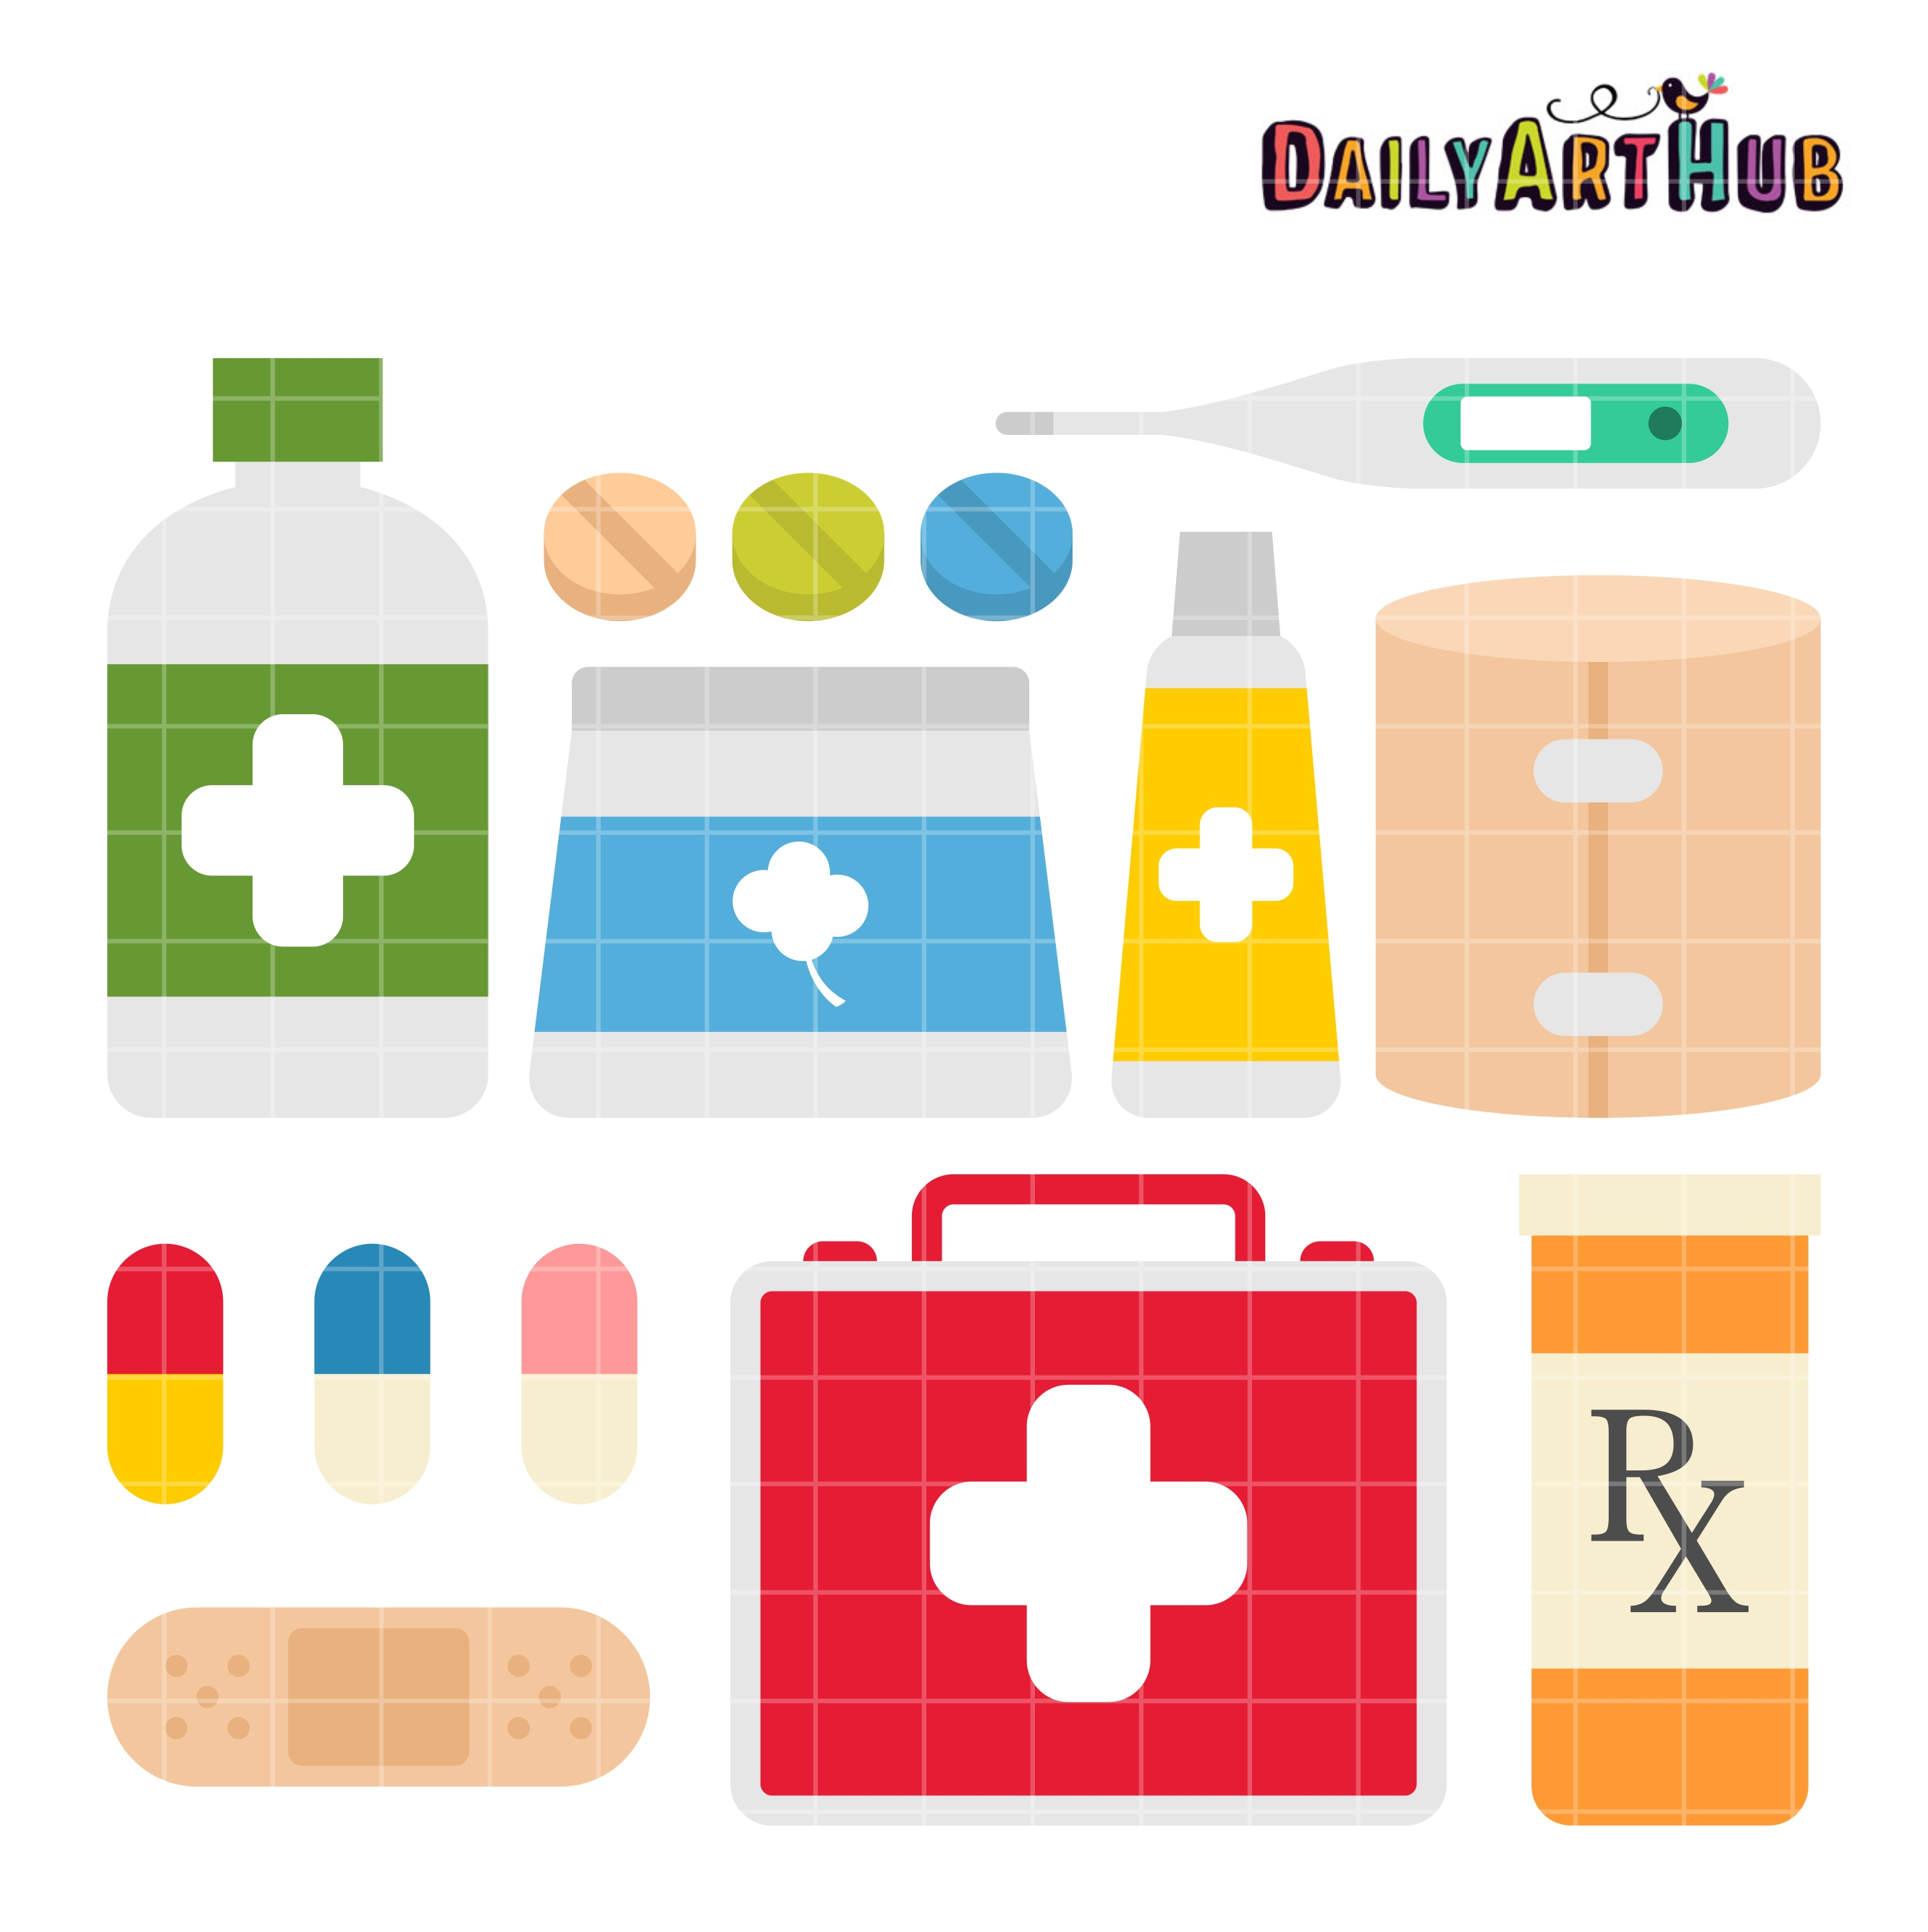 First aid kit contents clipart.